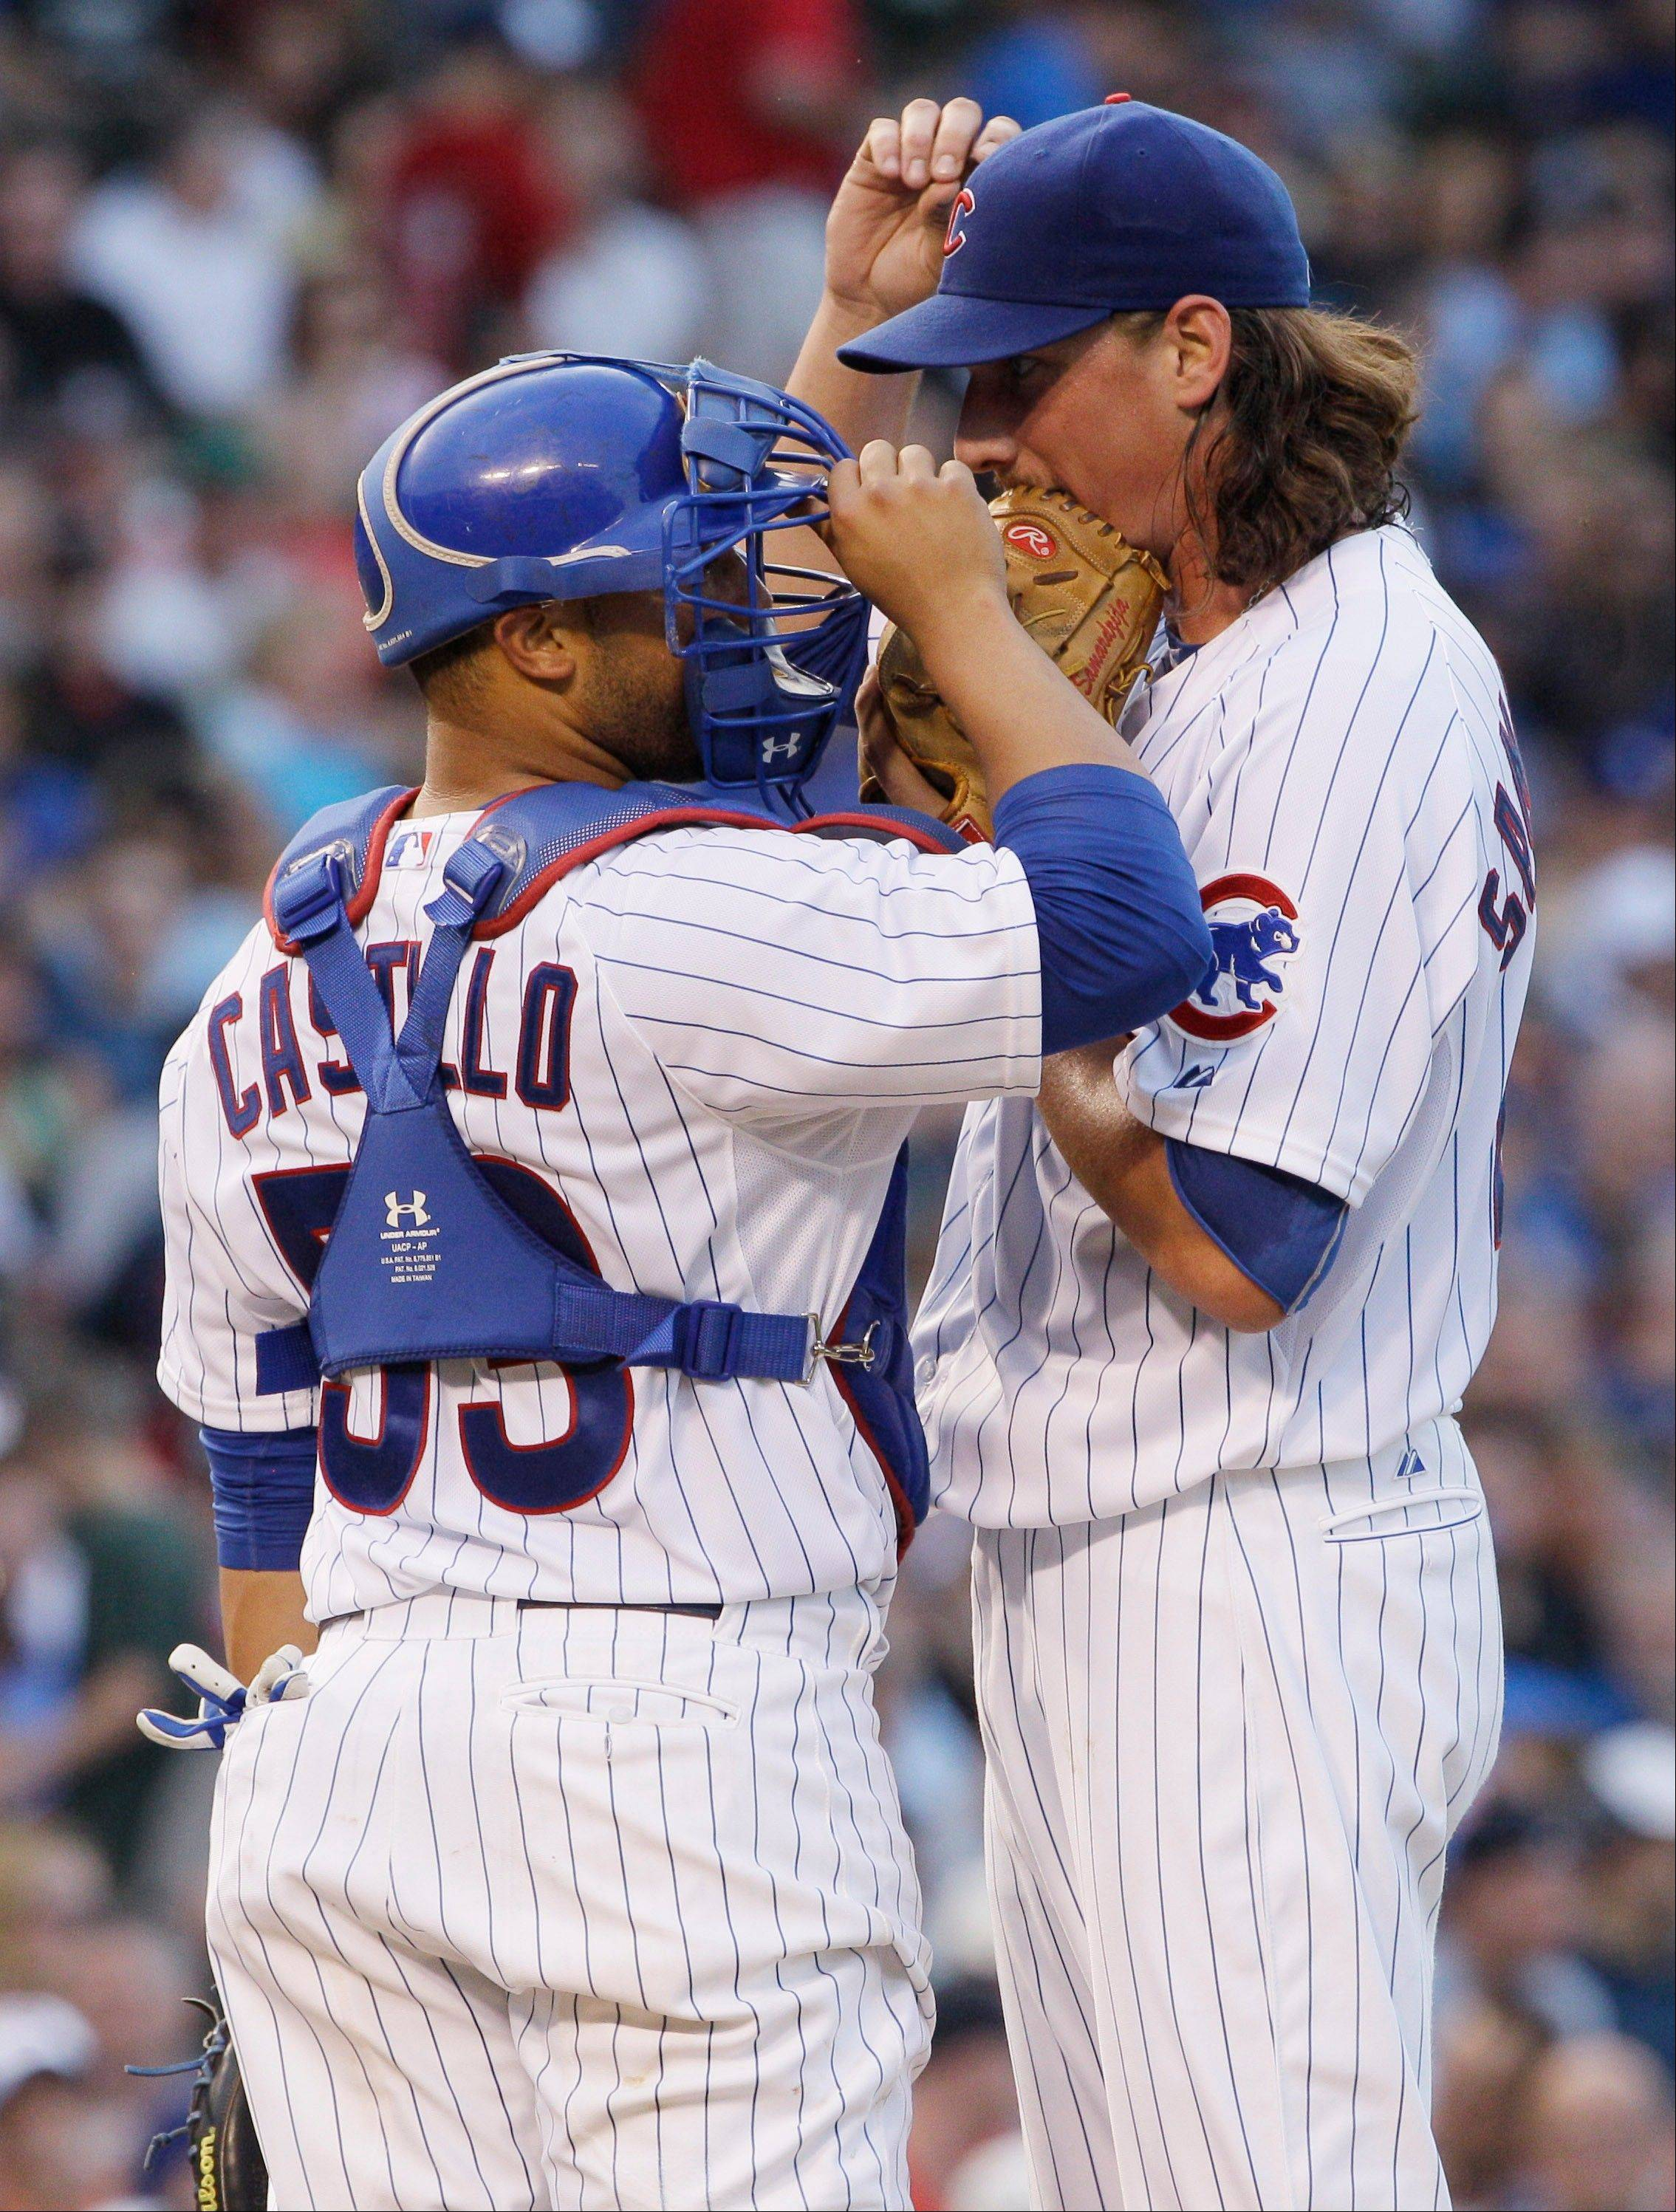 Cubs starter Jeff Samardzija talks with catcher Welington Castillo during the fourth inning Saturday night. Samardzija defended teammate Alfonso Soriano after the outfielder was booed in the sixth inning.